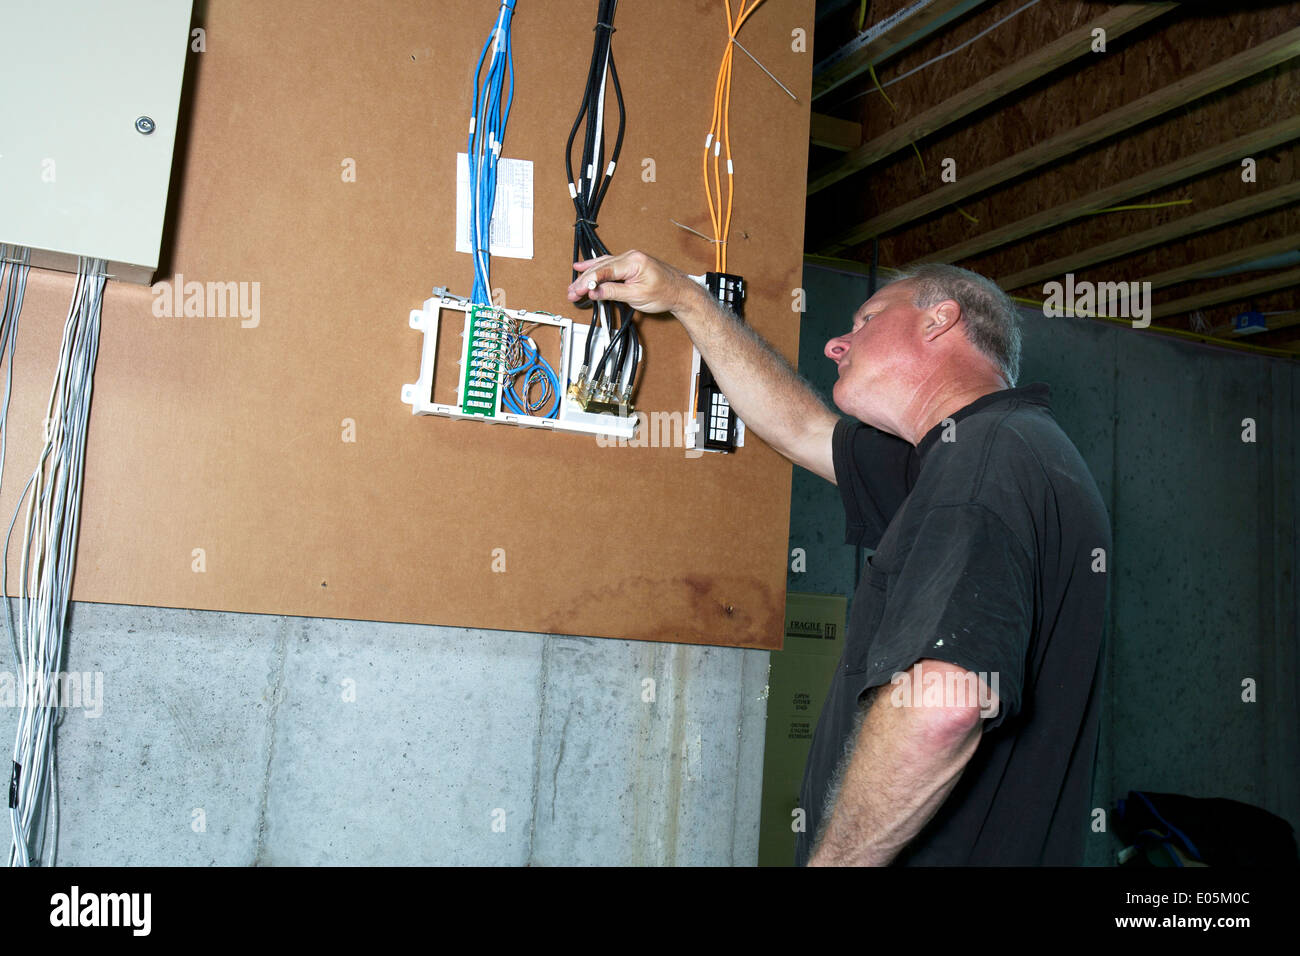 cable wires house stock photos cable wires house stock images alamy rh alamy com Wiring Basement Wall Wiring a Dryer in the Basement